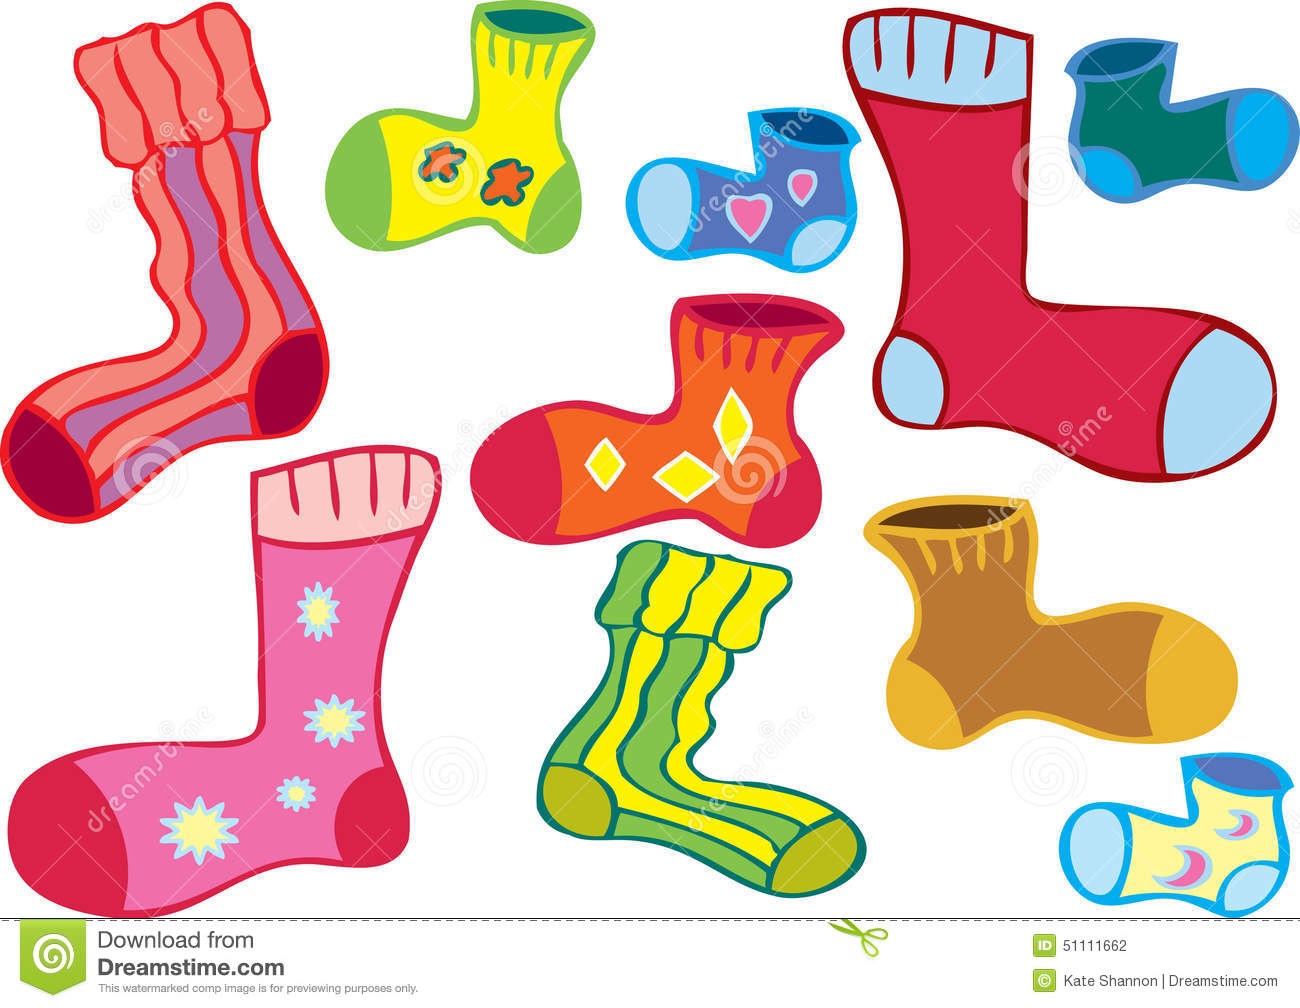 cartoon of several different colored odd socks.